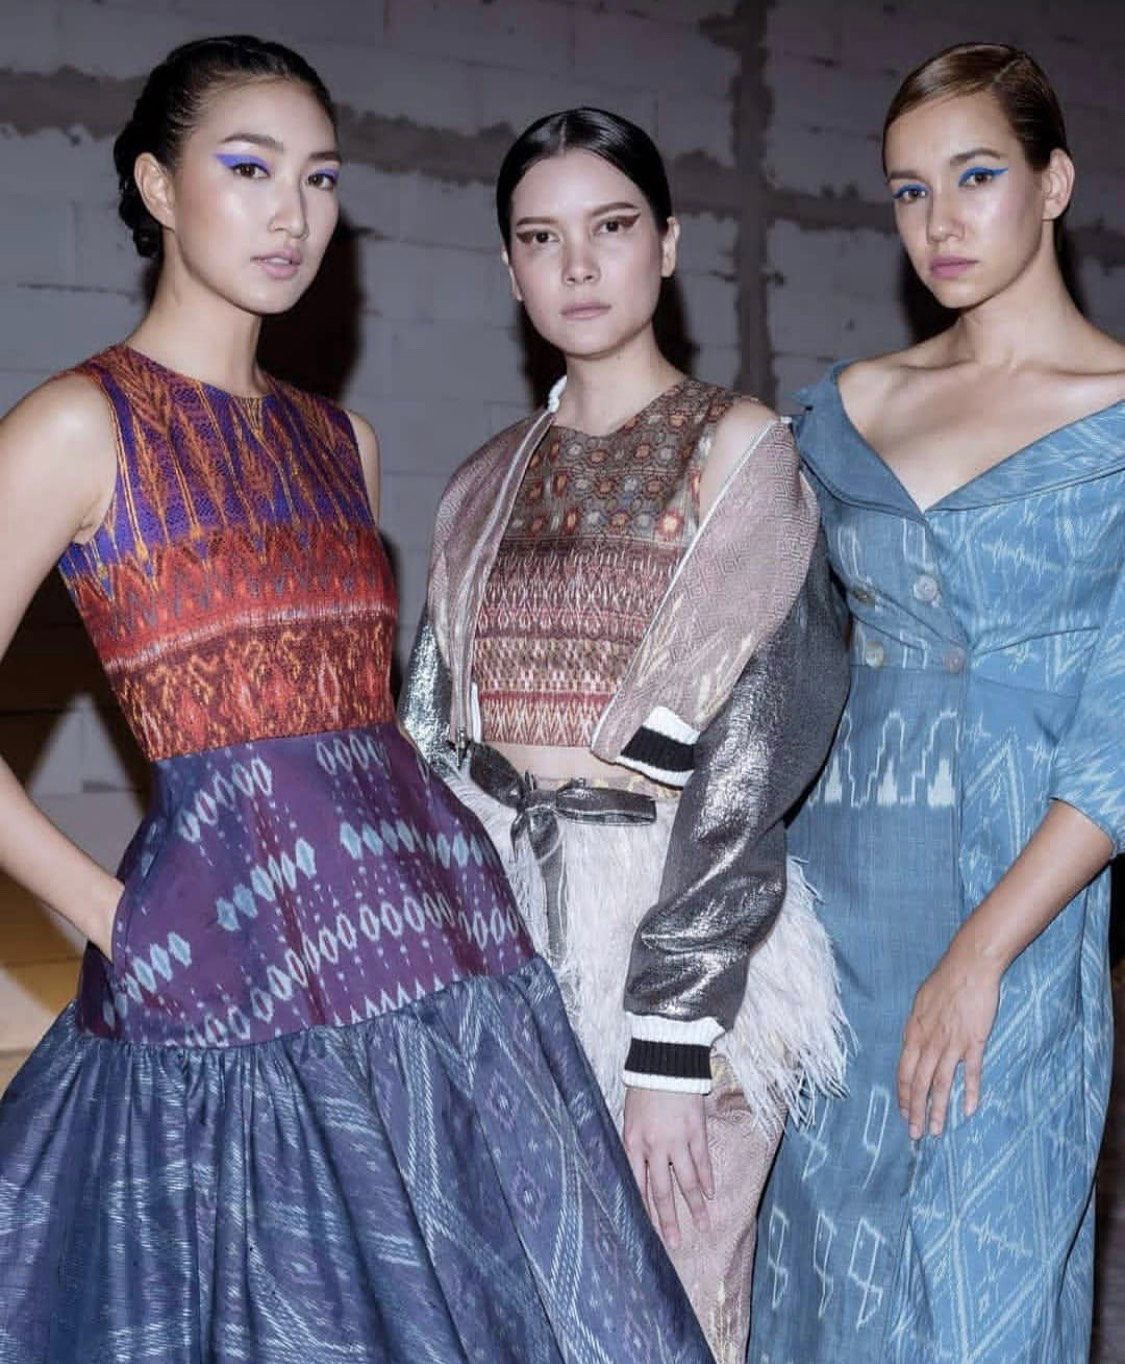 Three models at Queen sirikit department of sericulture presents special fashion show 'SILK ISAN'